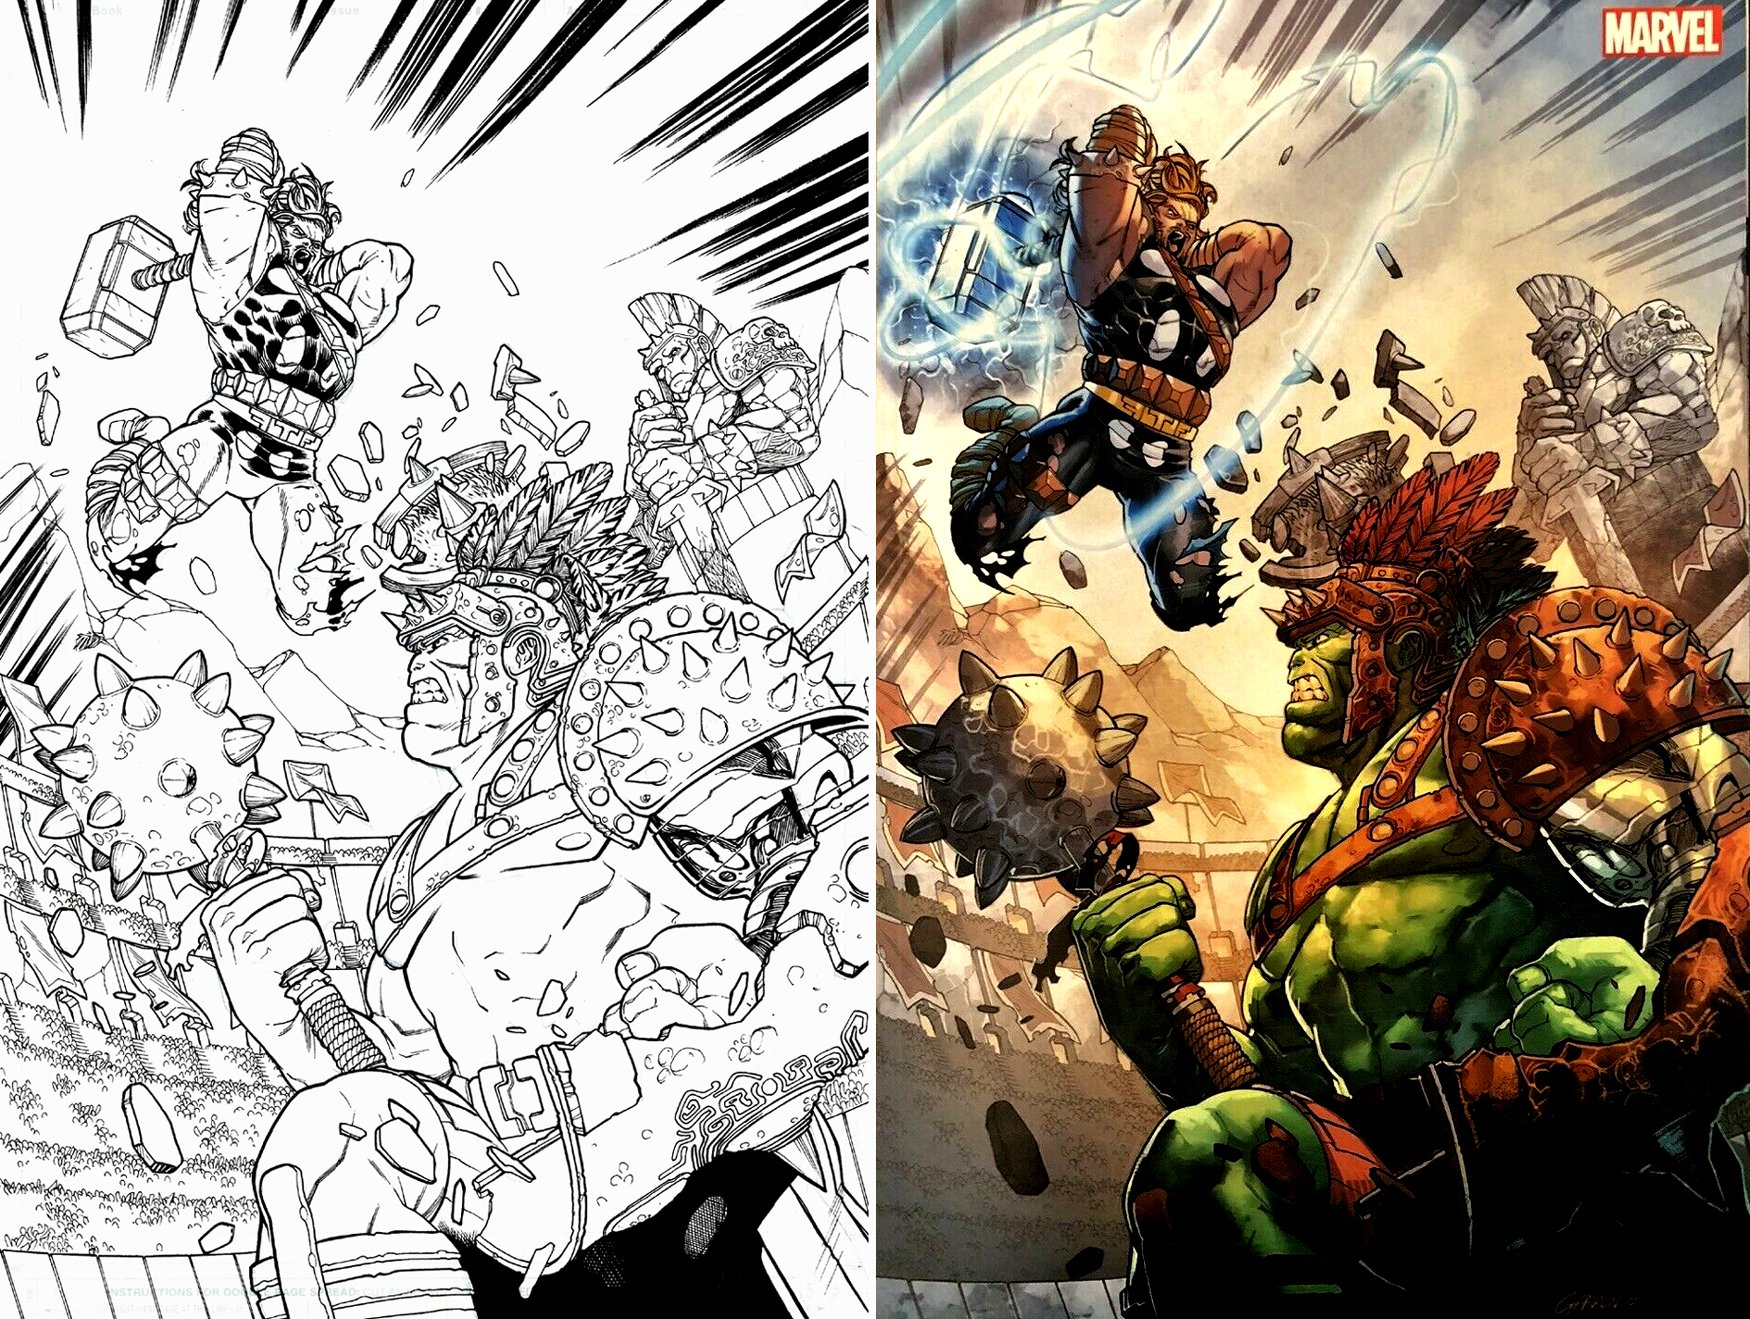 Thor vs Hulk PublishedCvr (SOLD LIVE ON 'DUELING DEALERS OF COMIC ART' EPISODE #29 PODCAST ON 8-4-2021 (RE-WATCH THIS FUNNY ART SELLING SHOW HERE)